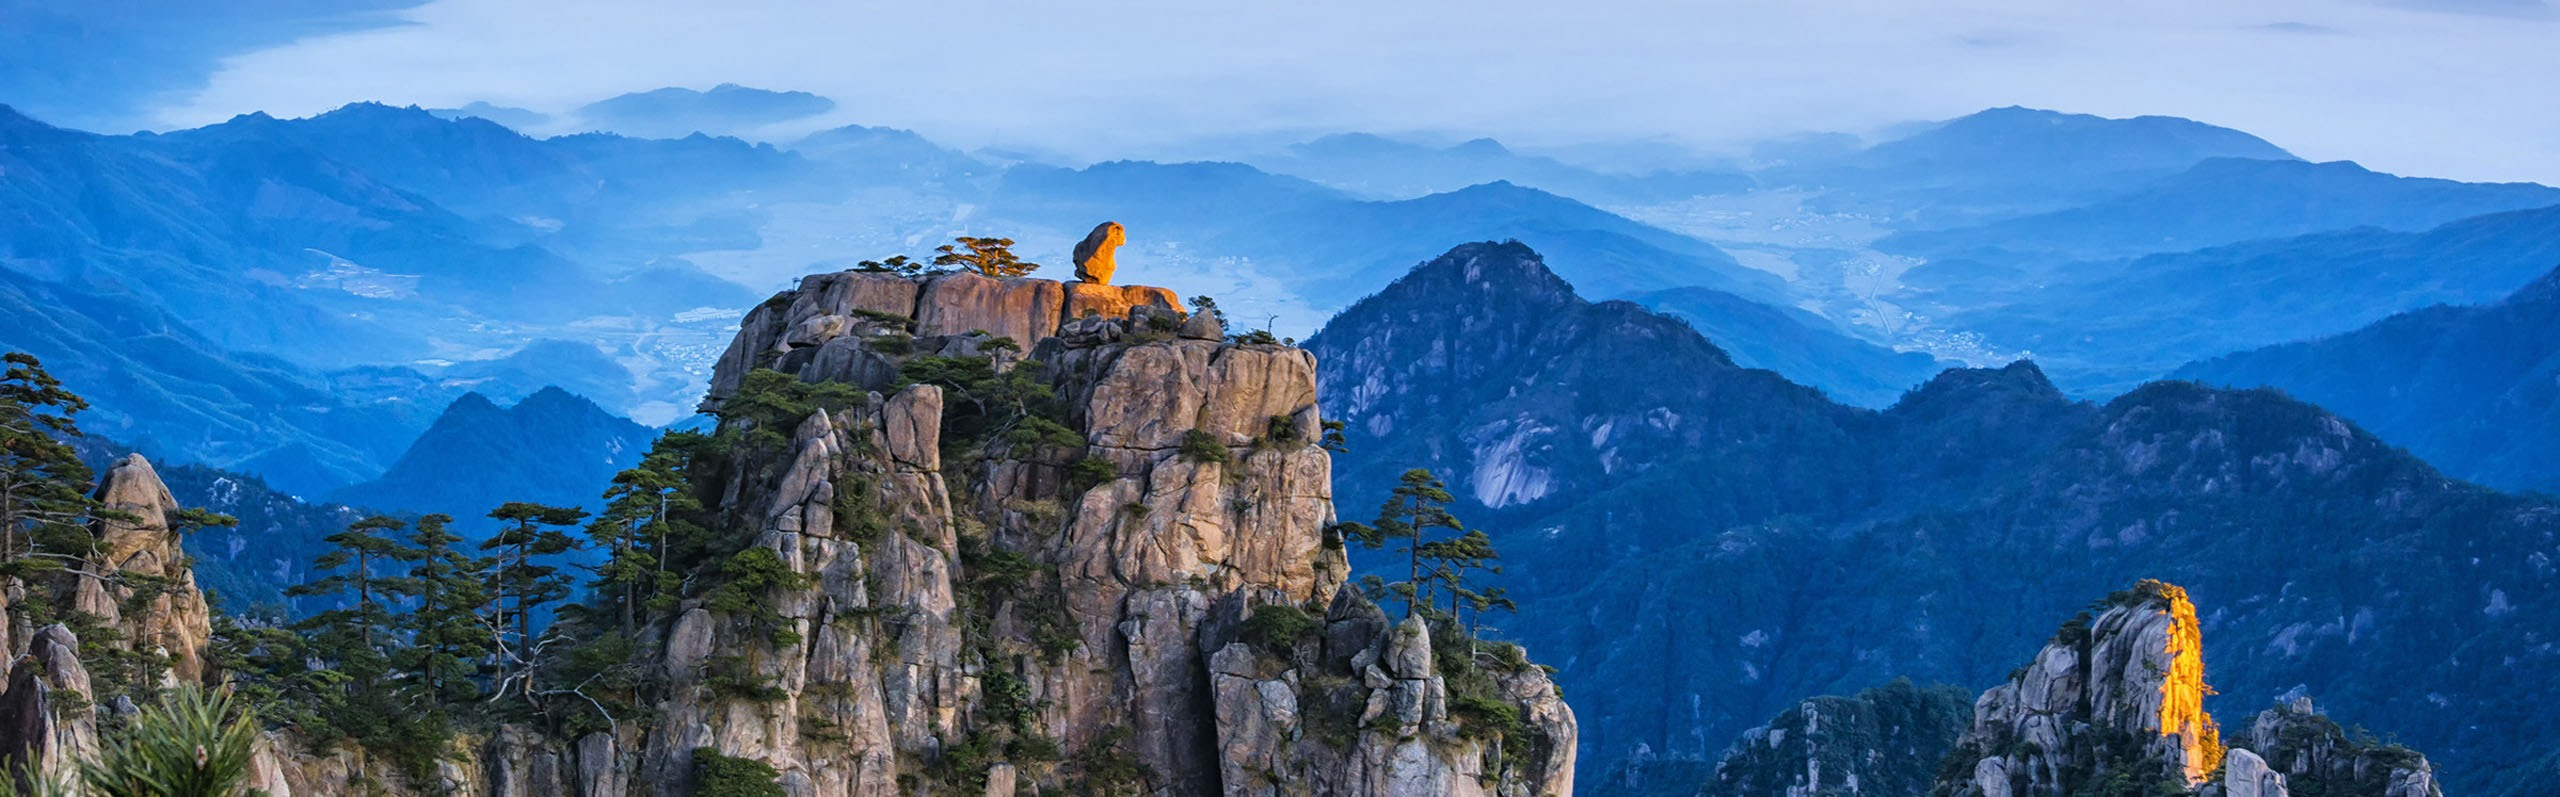 Essence of Huangshan Tour